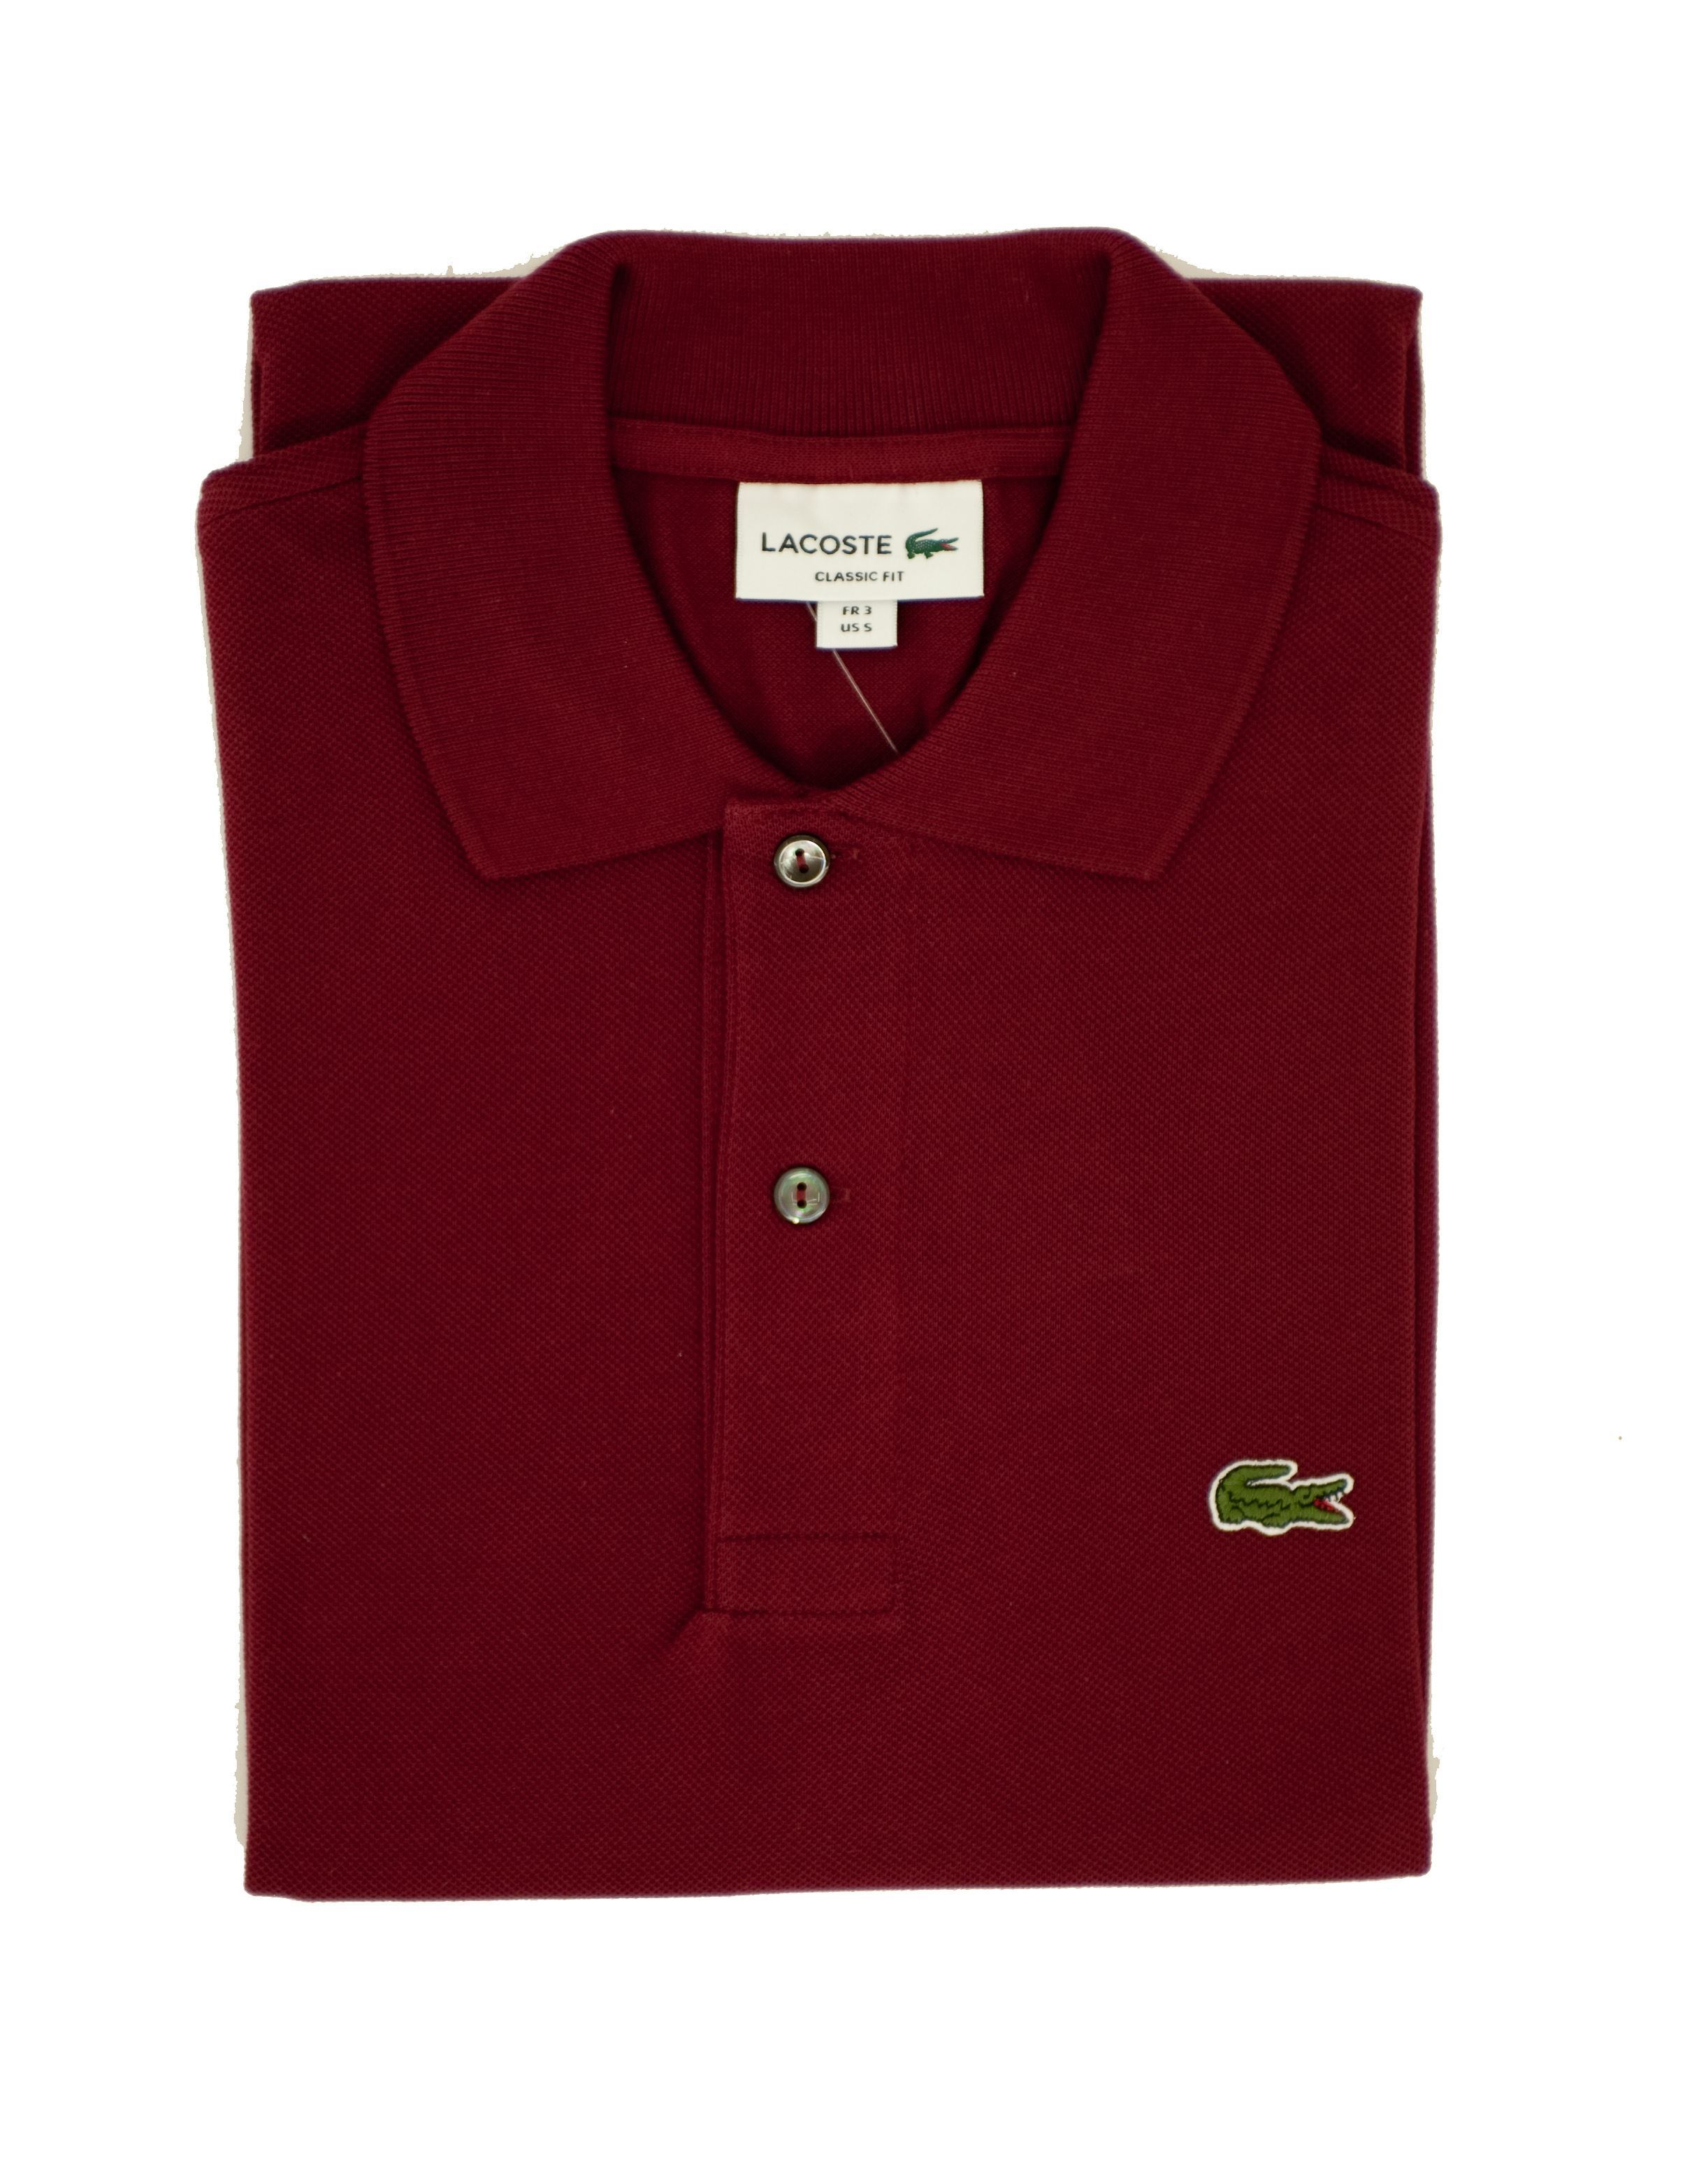 0327473649 Lacoste short-sleeved Bordeaux polo shirt